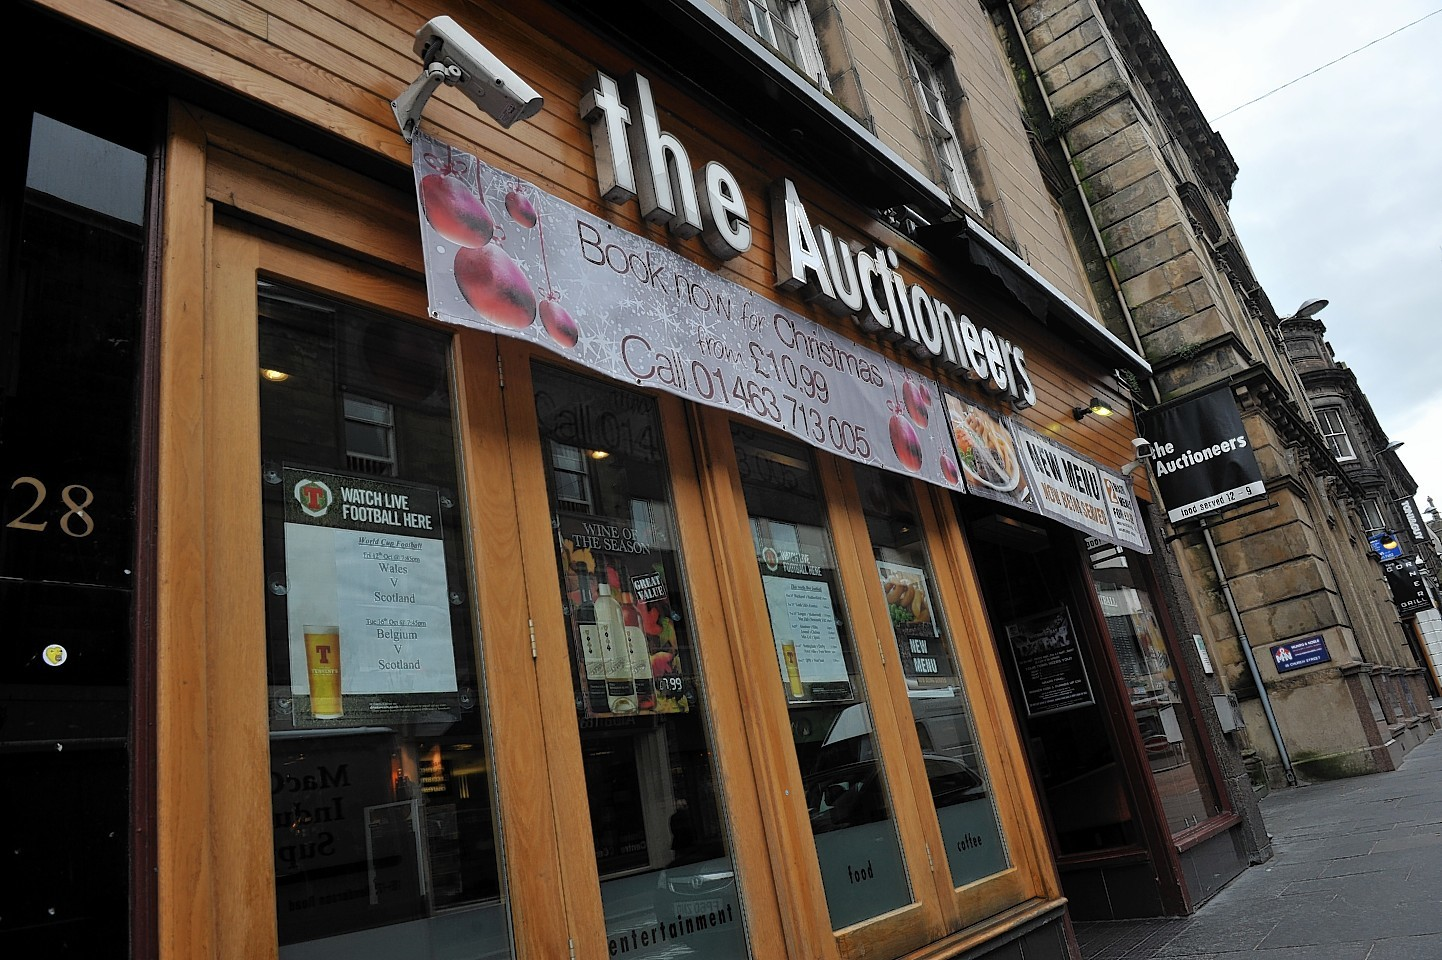 The Auctioneers in Inverness